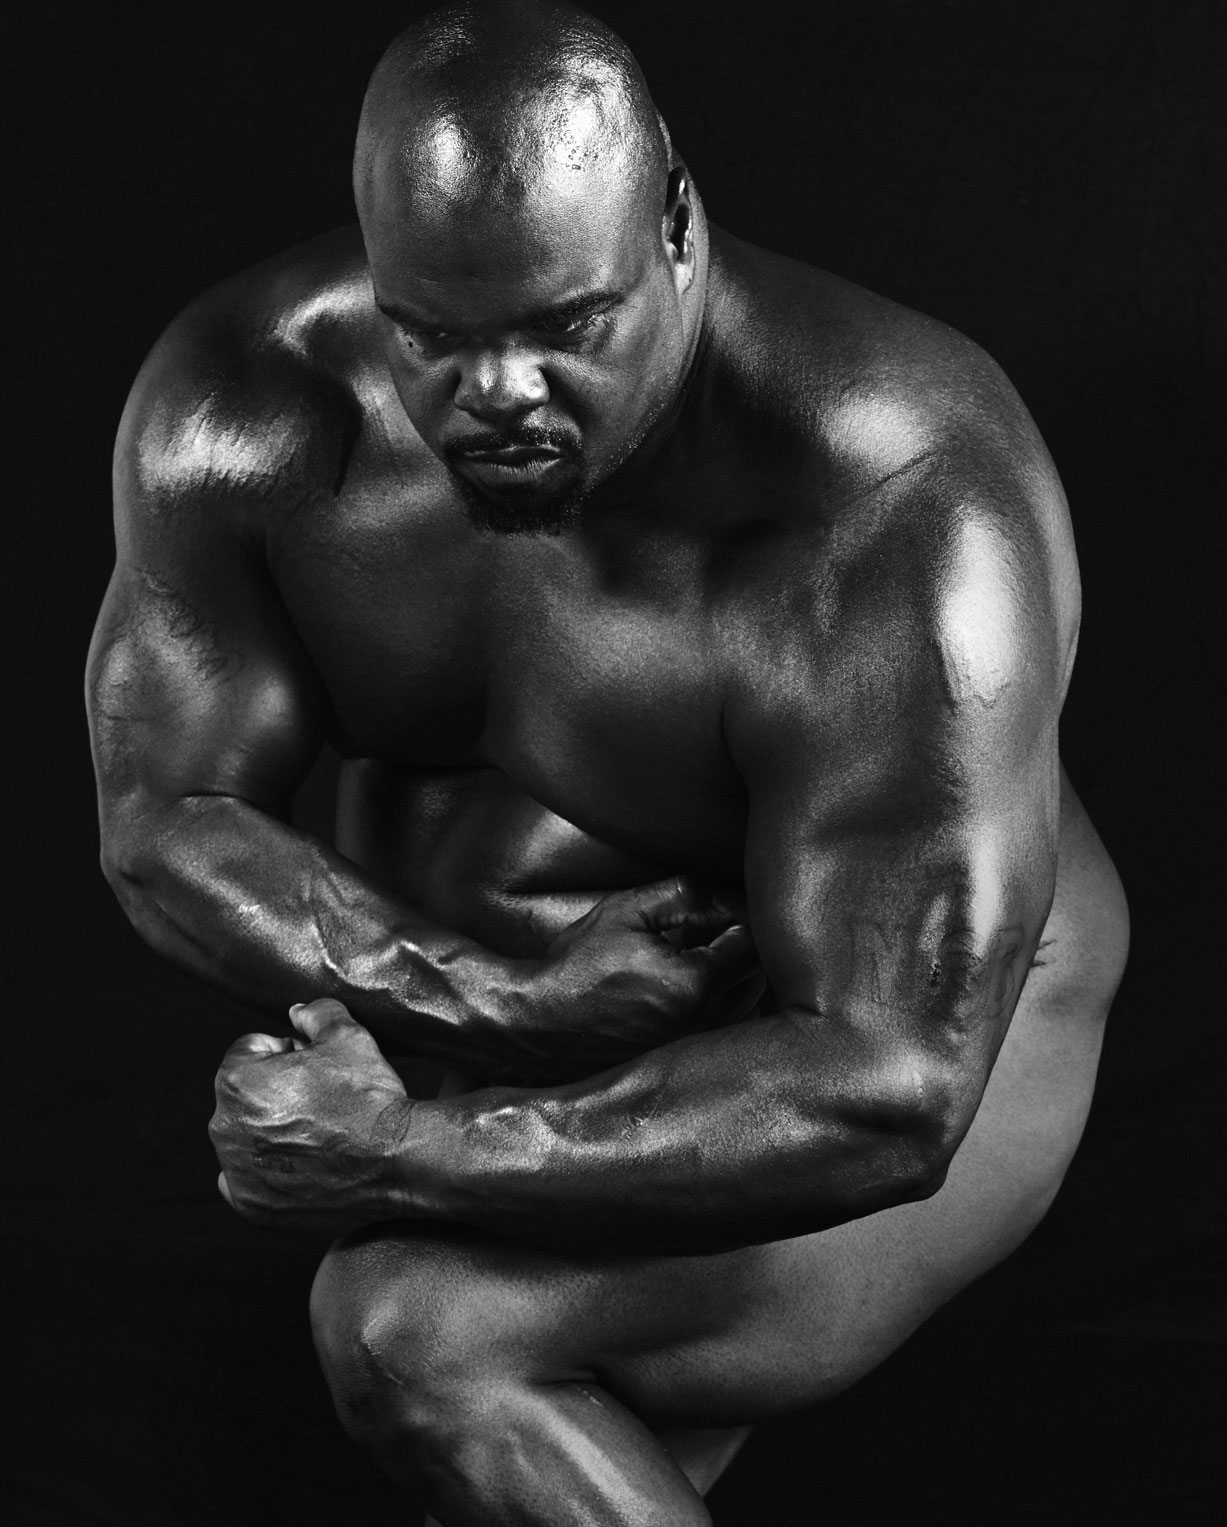 ESPN Magazine The Body Issue 2016 - Vince Wilfork / Винс Уилфорк - Культ тела журнала ESPN